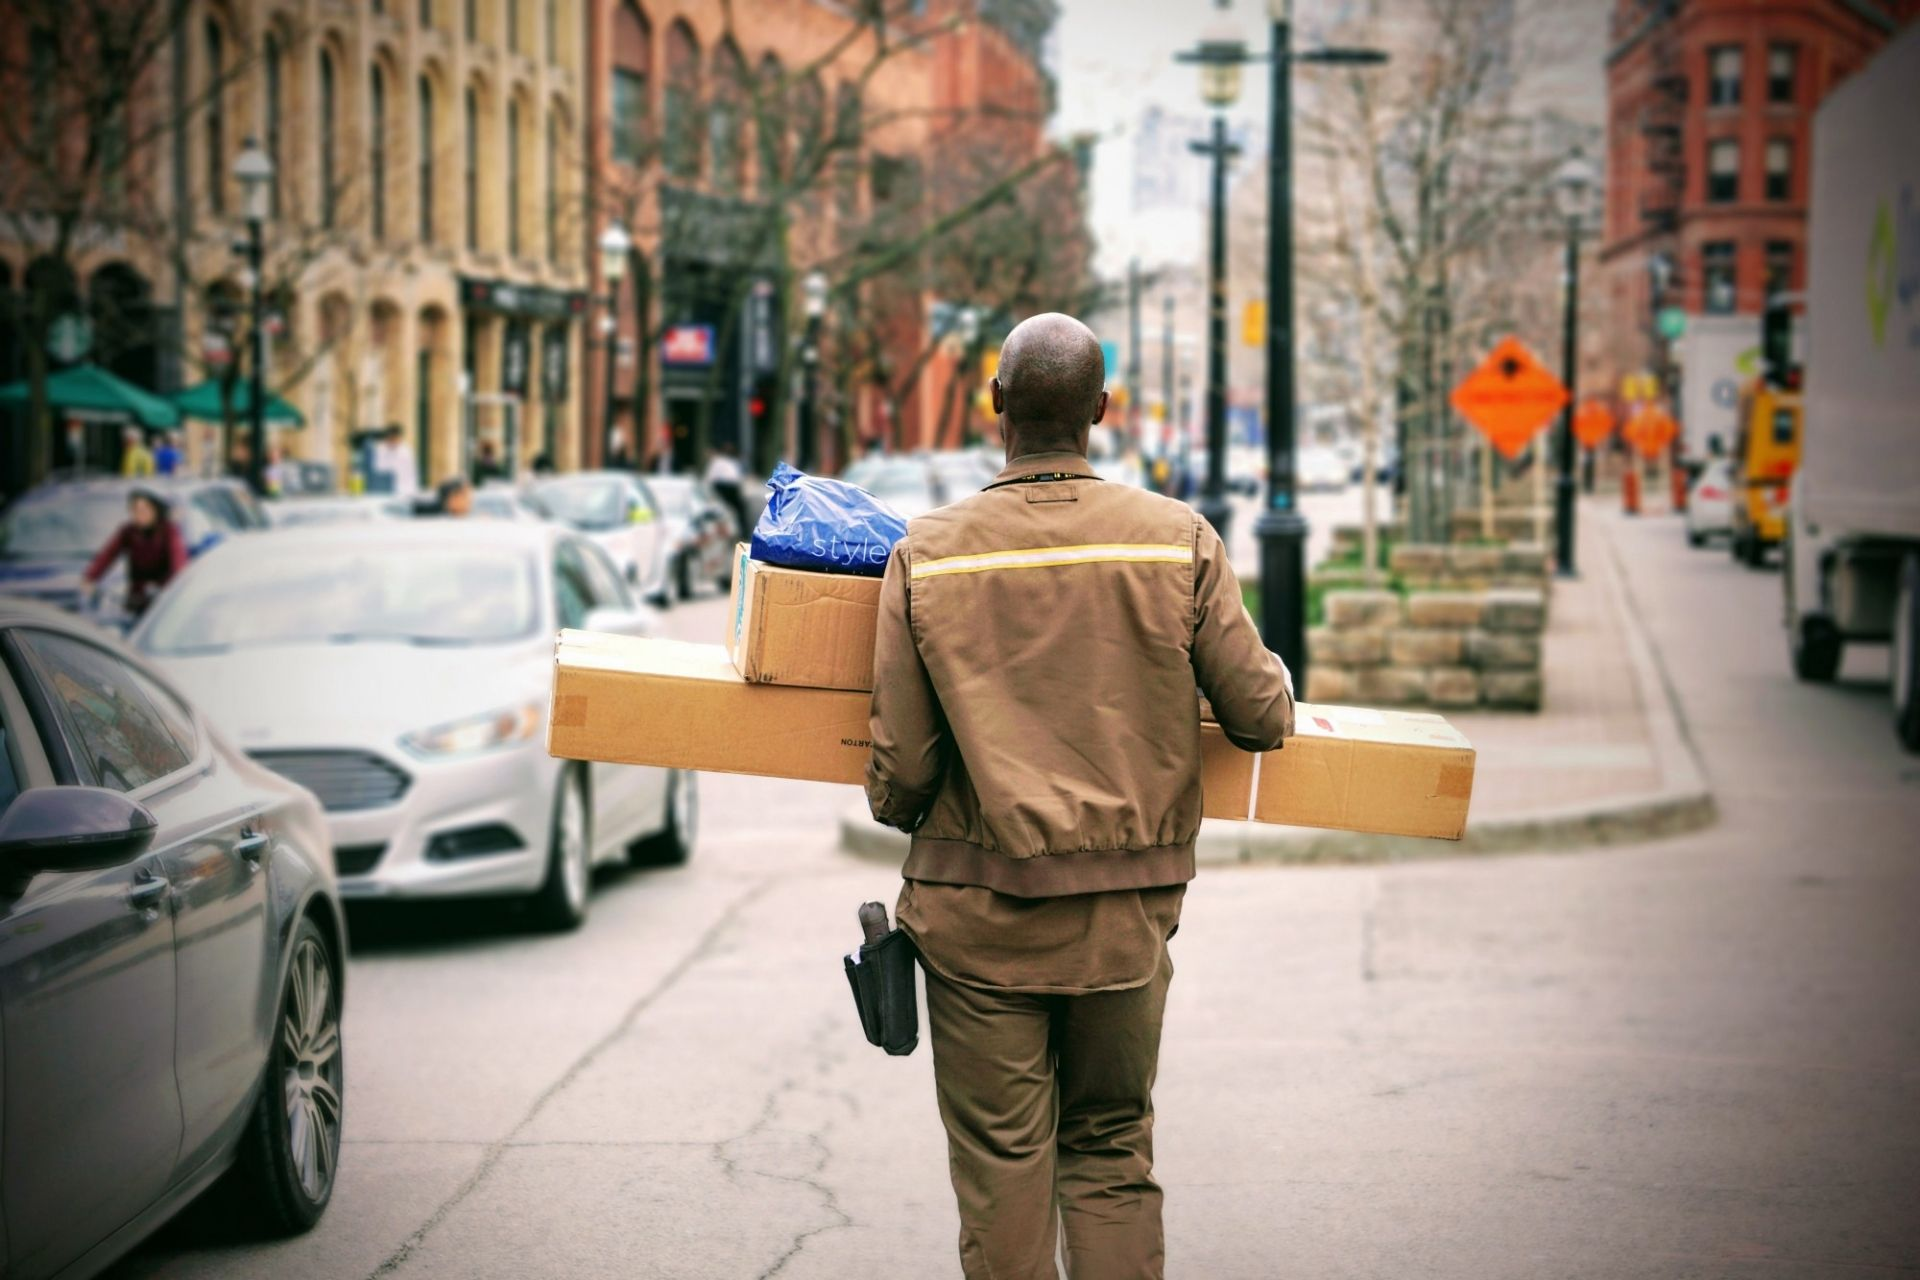 Courier carrying packages